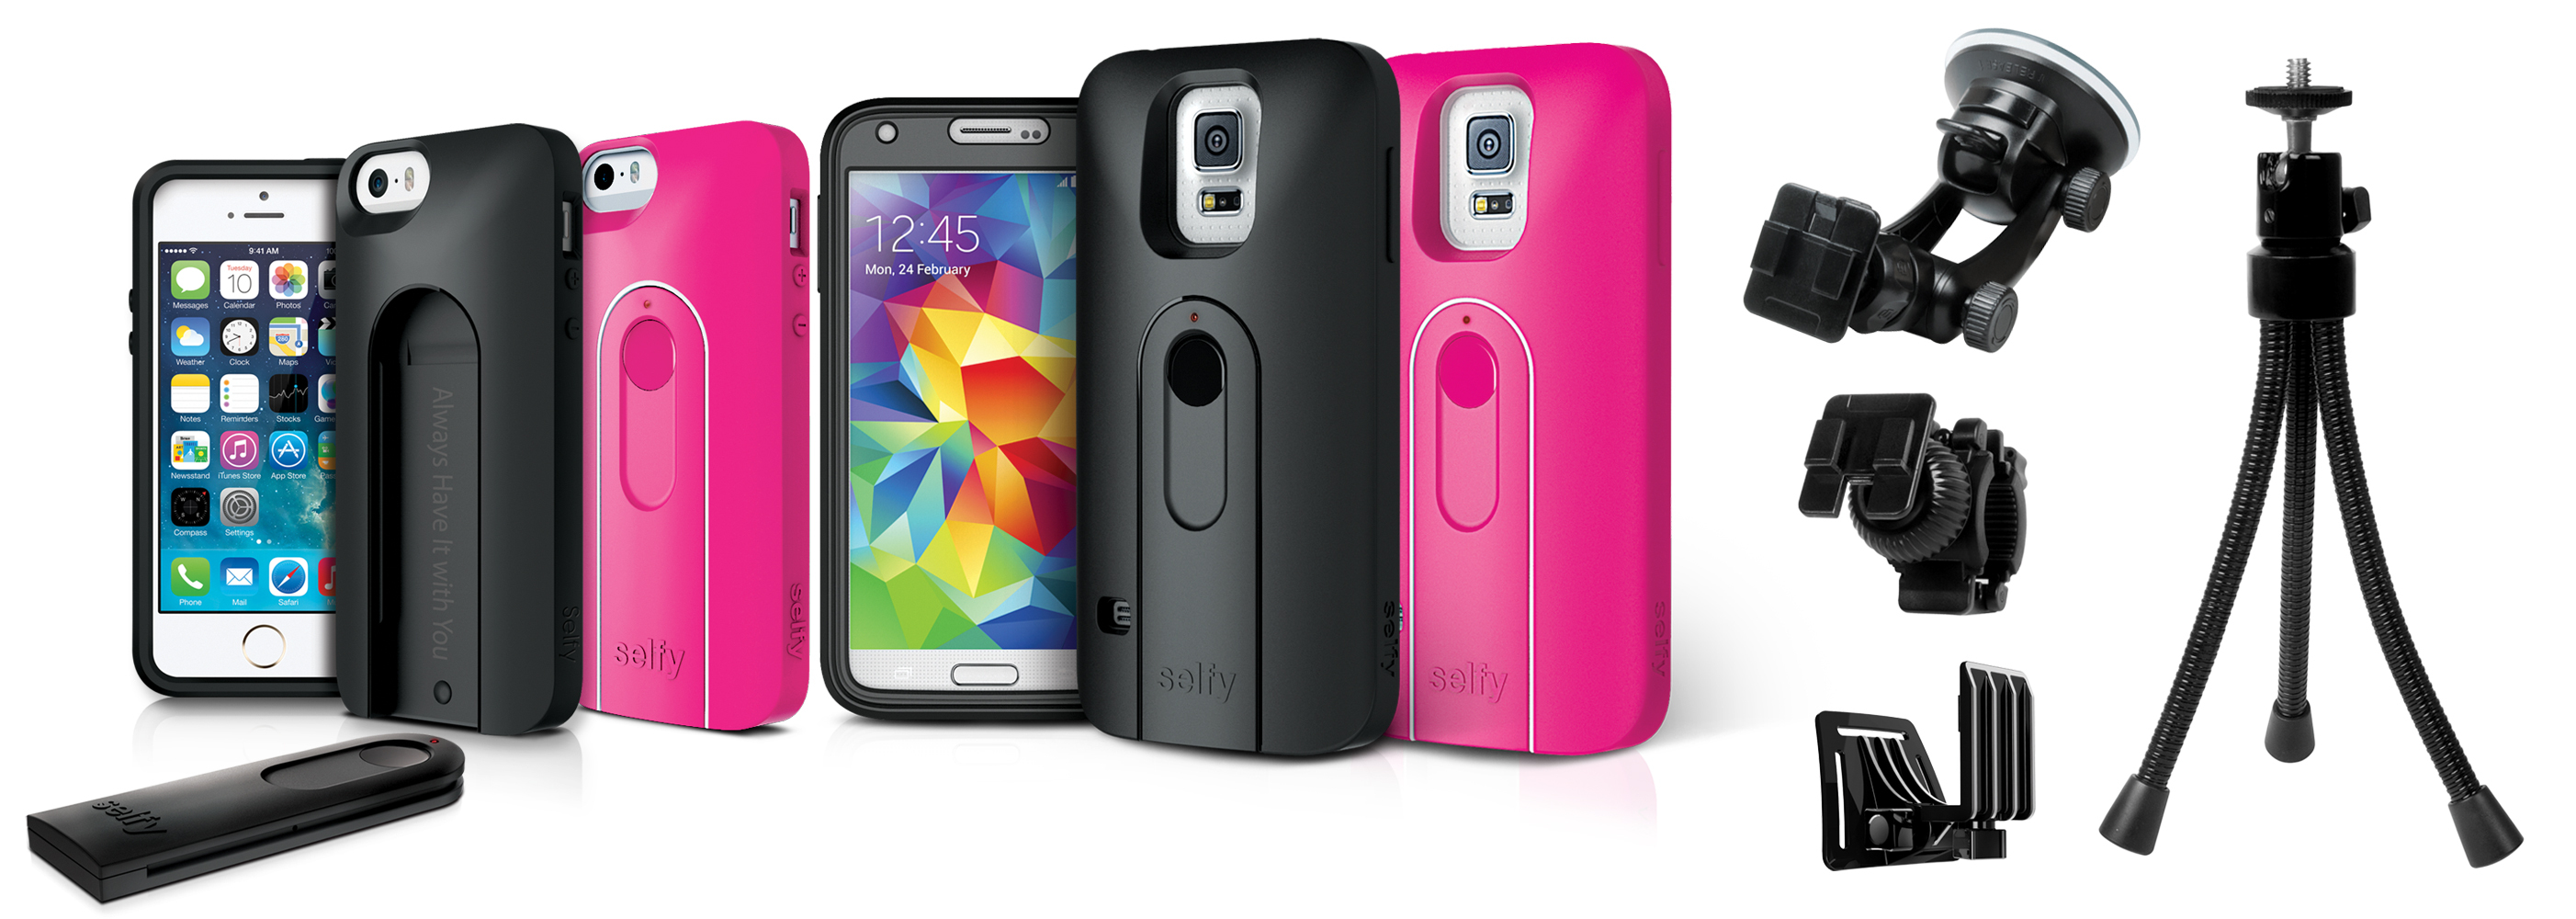 Selfy(TM) by iLuv Offers Stylish Protection, a Remote Camera Shutter, and Camera Accessories for the iPhone 5/5s and GALAXY S5 (Photo: Business Wire)